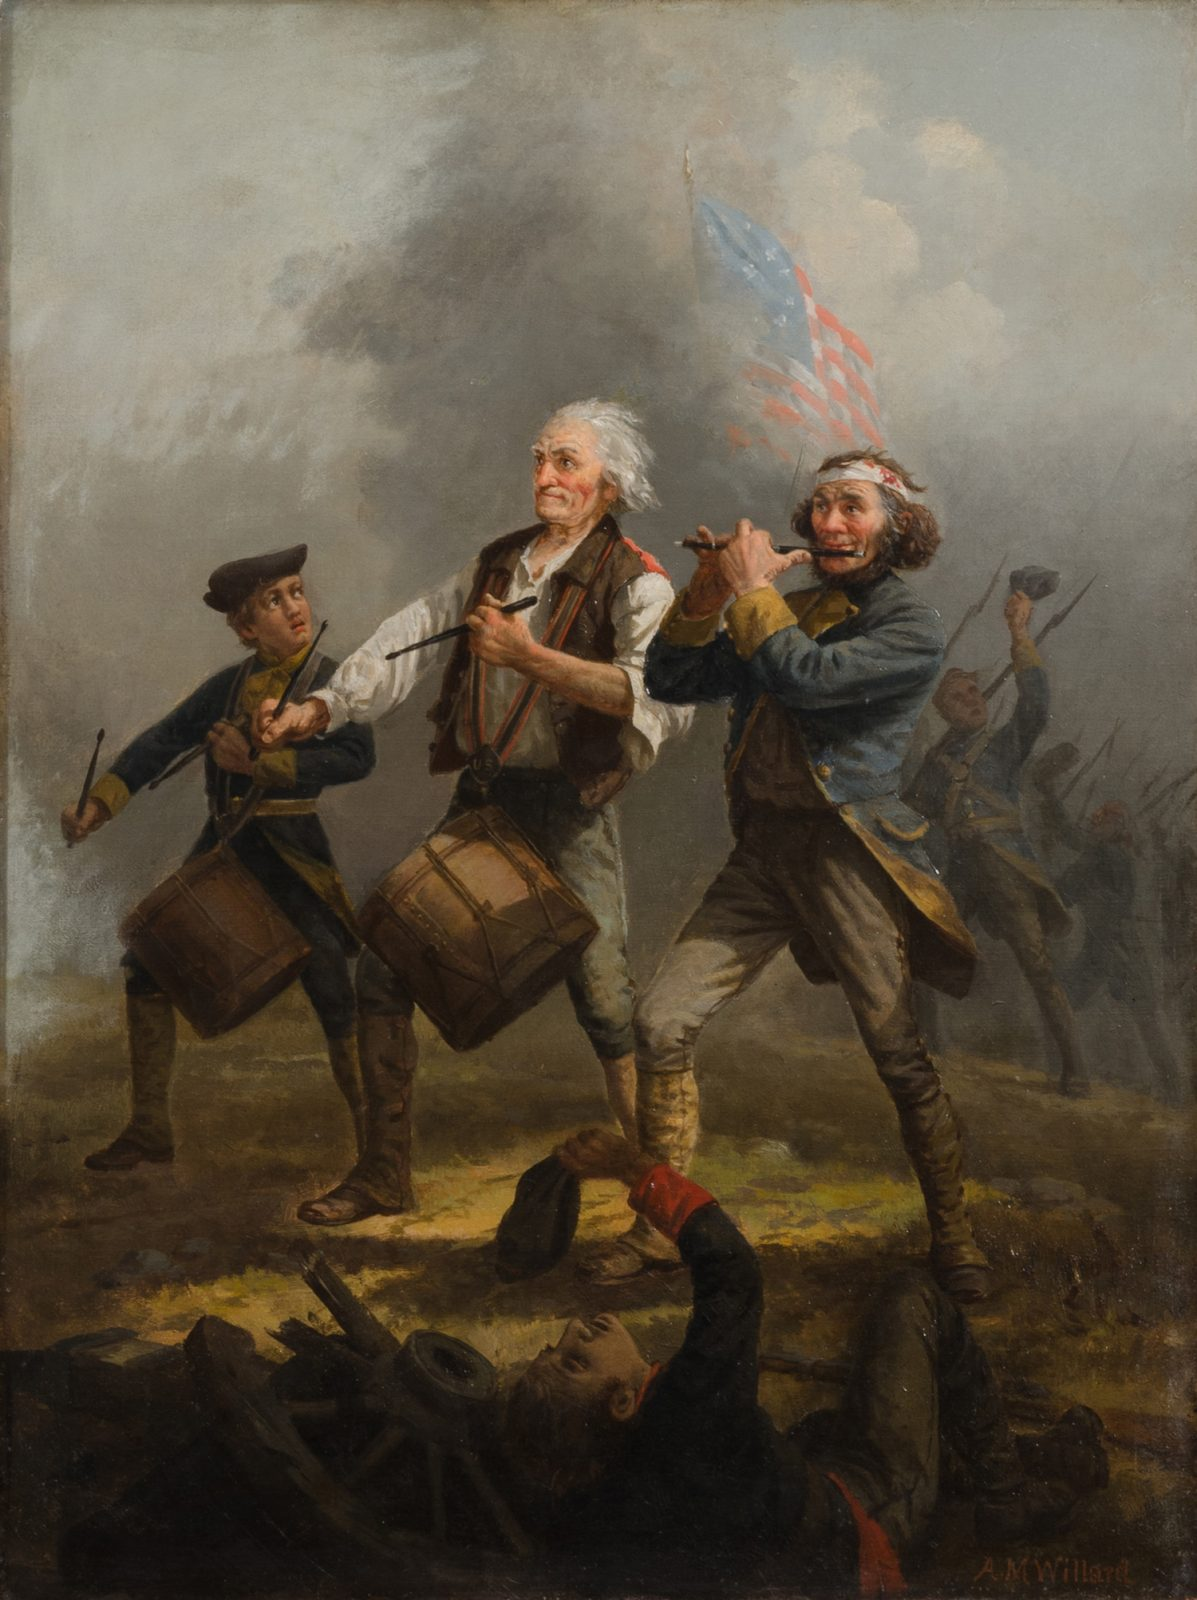 This work shows three music players, with soldiers in the background and foreground, with an American flag in the sky